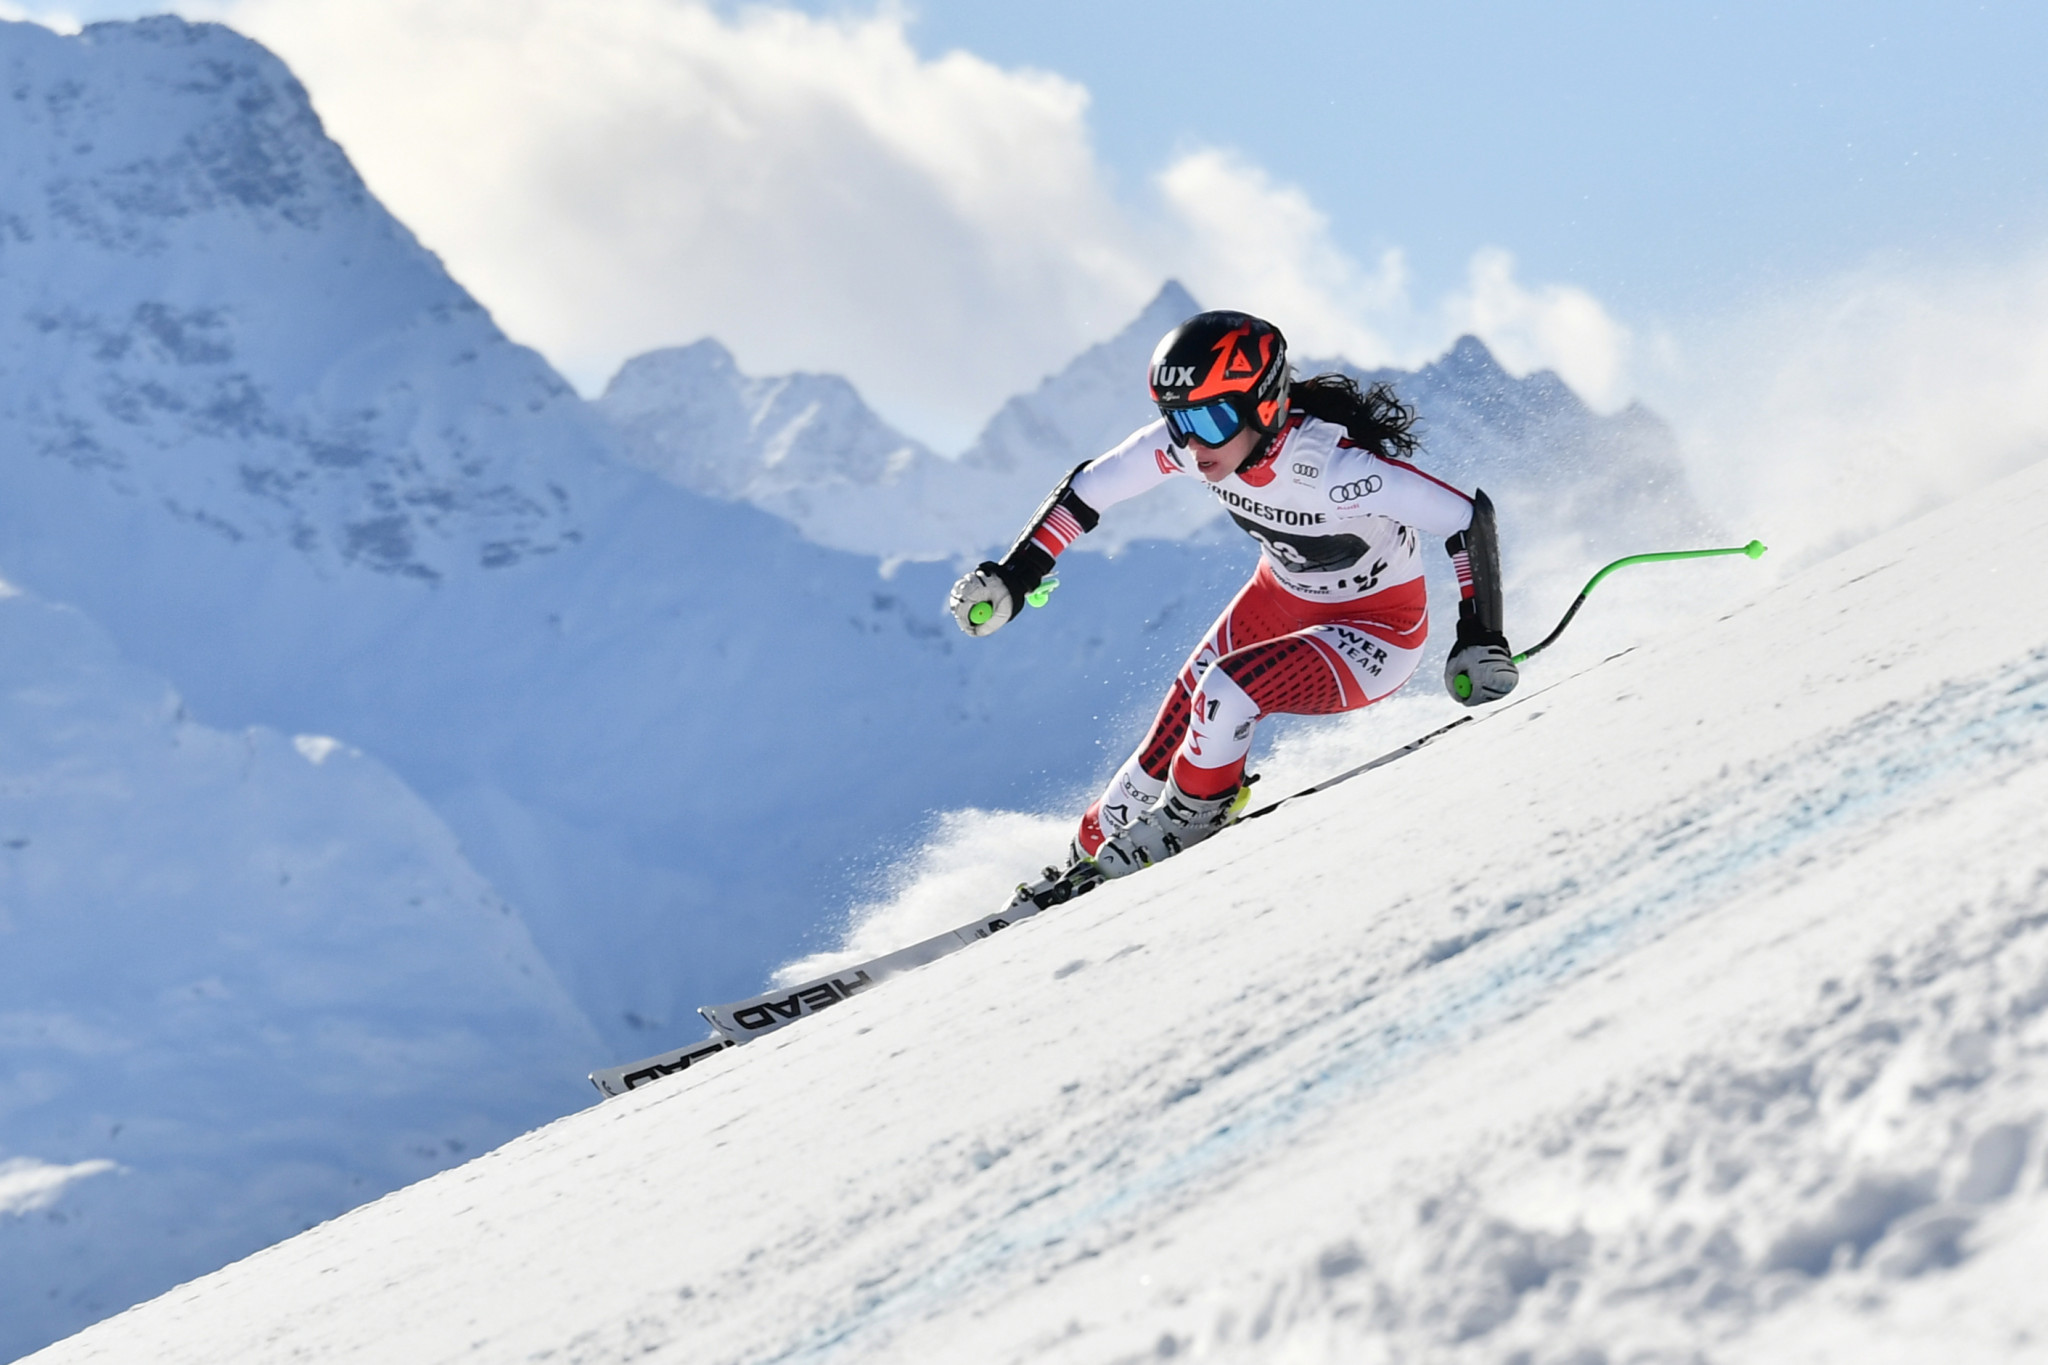 Austria's Brunner returns to snow training 12 months after tearing ACL